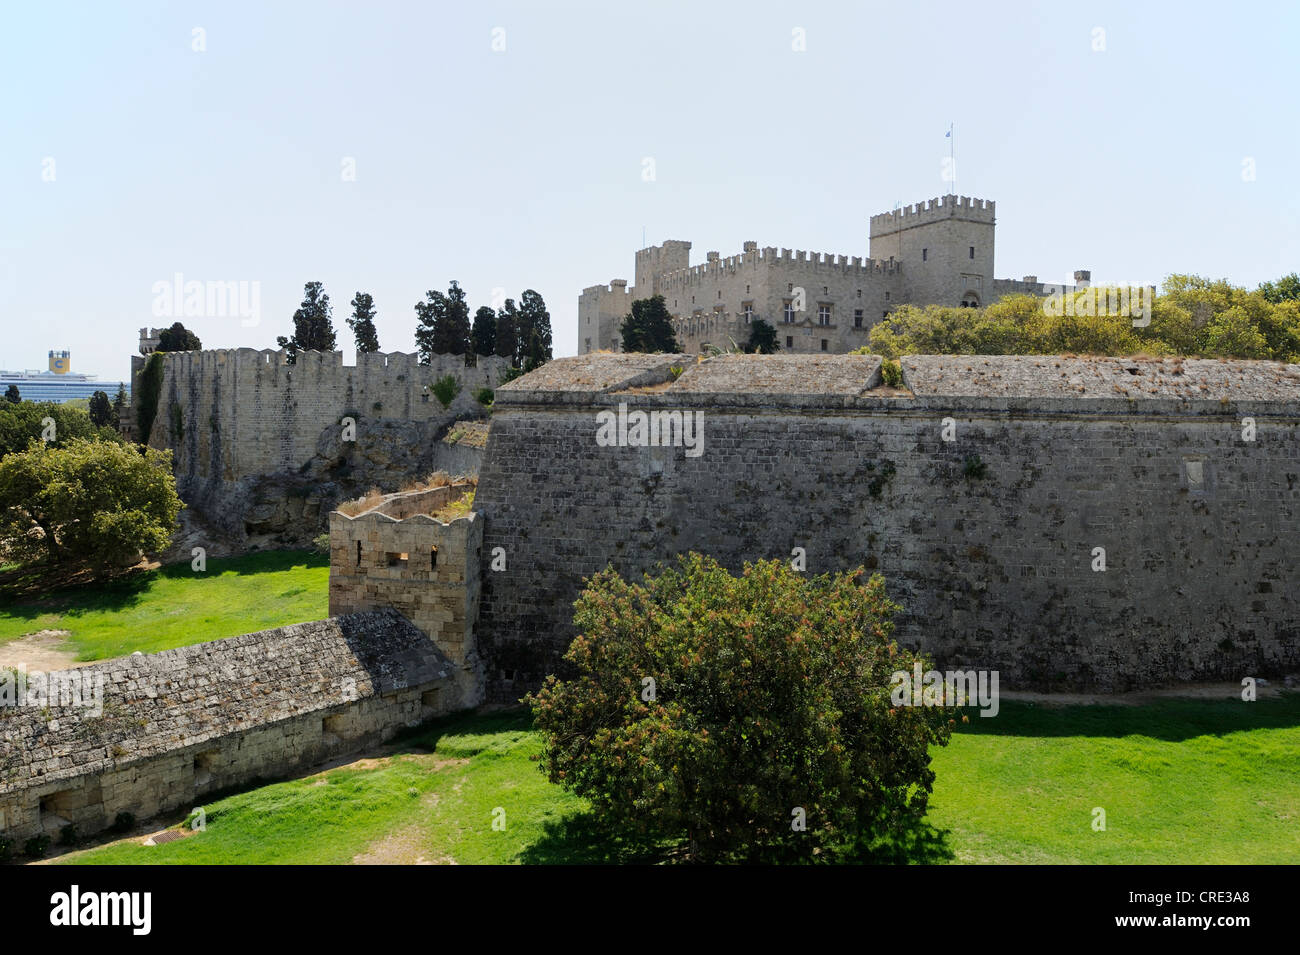 Palace of the Grand Master, Rhodes Town, Rhodes, Greece, Europe Stock Photo